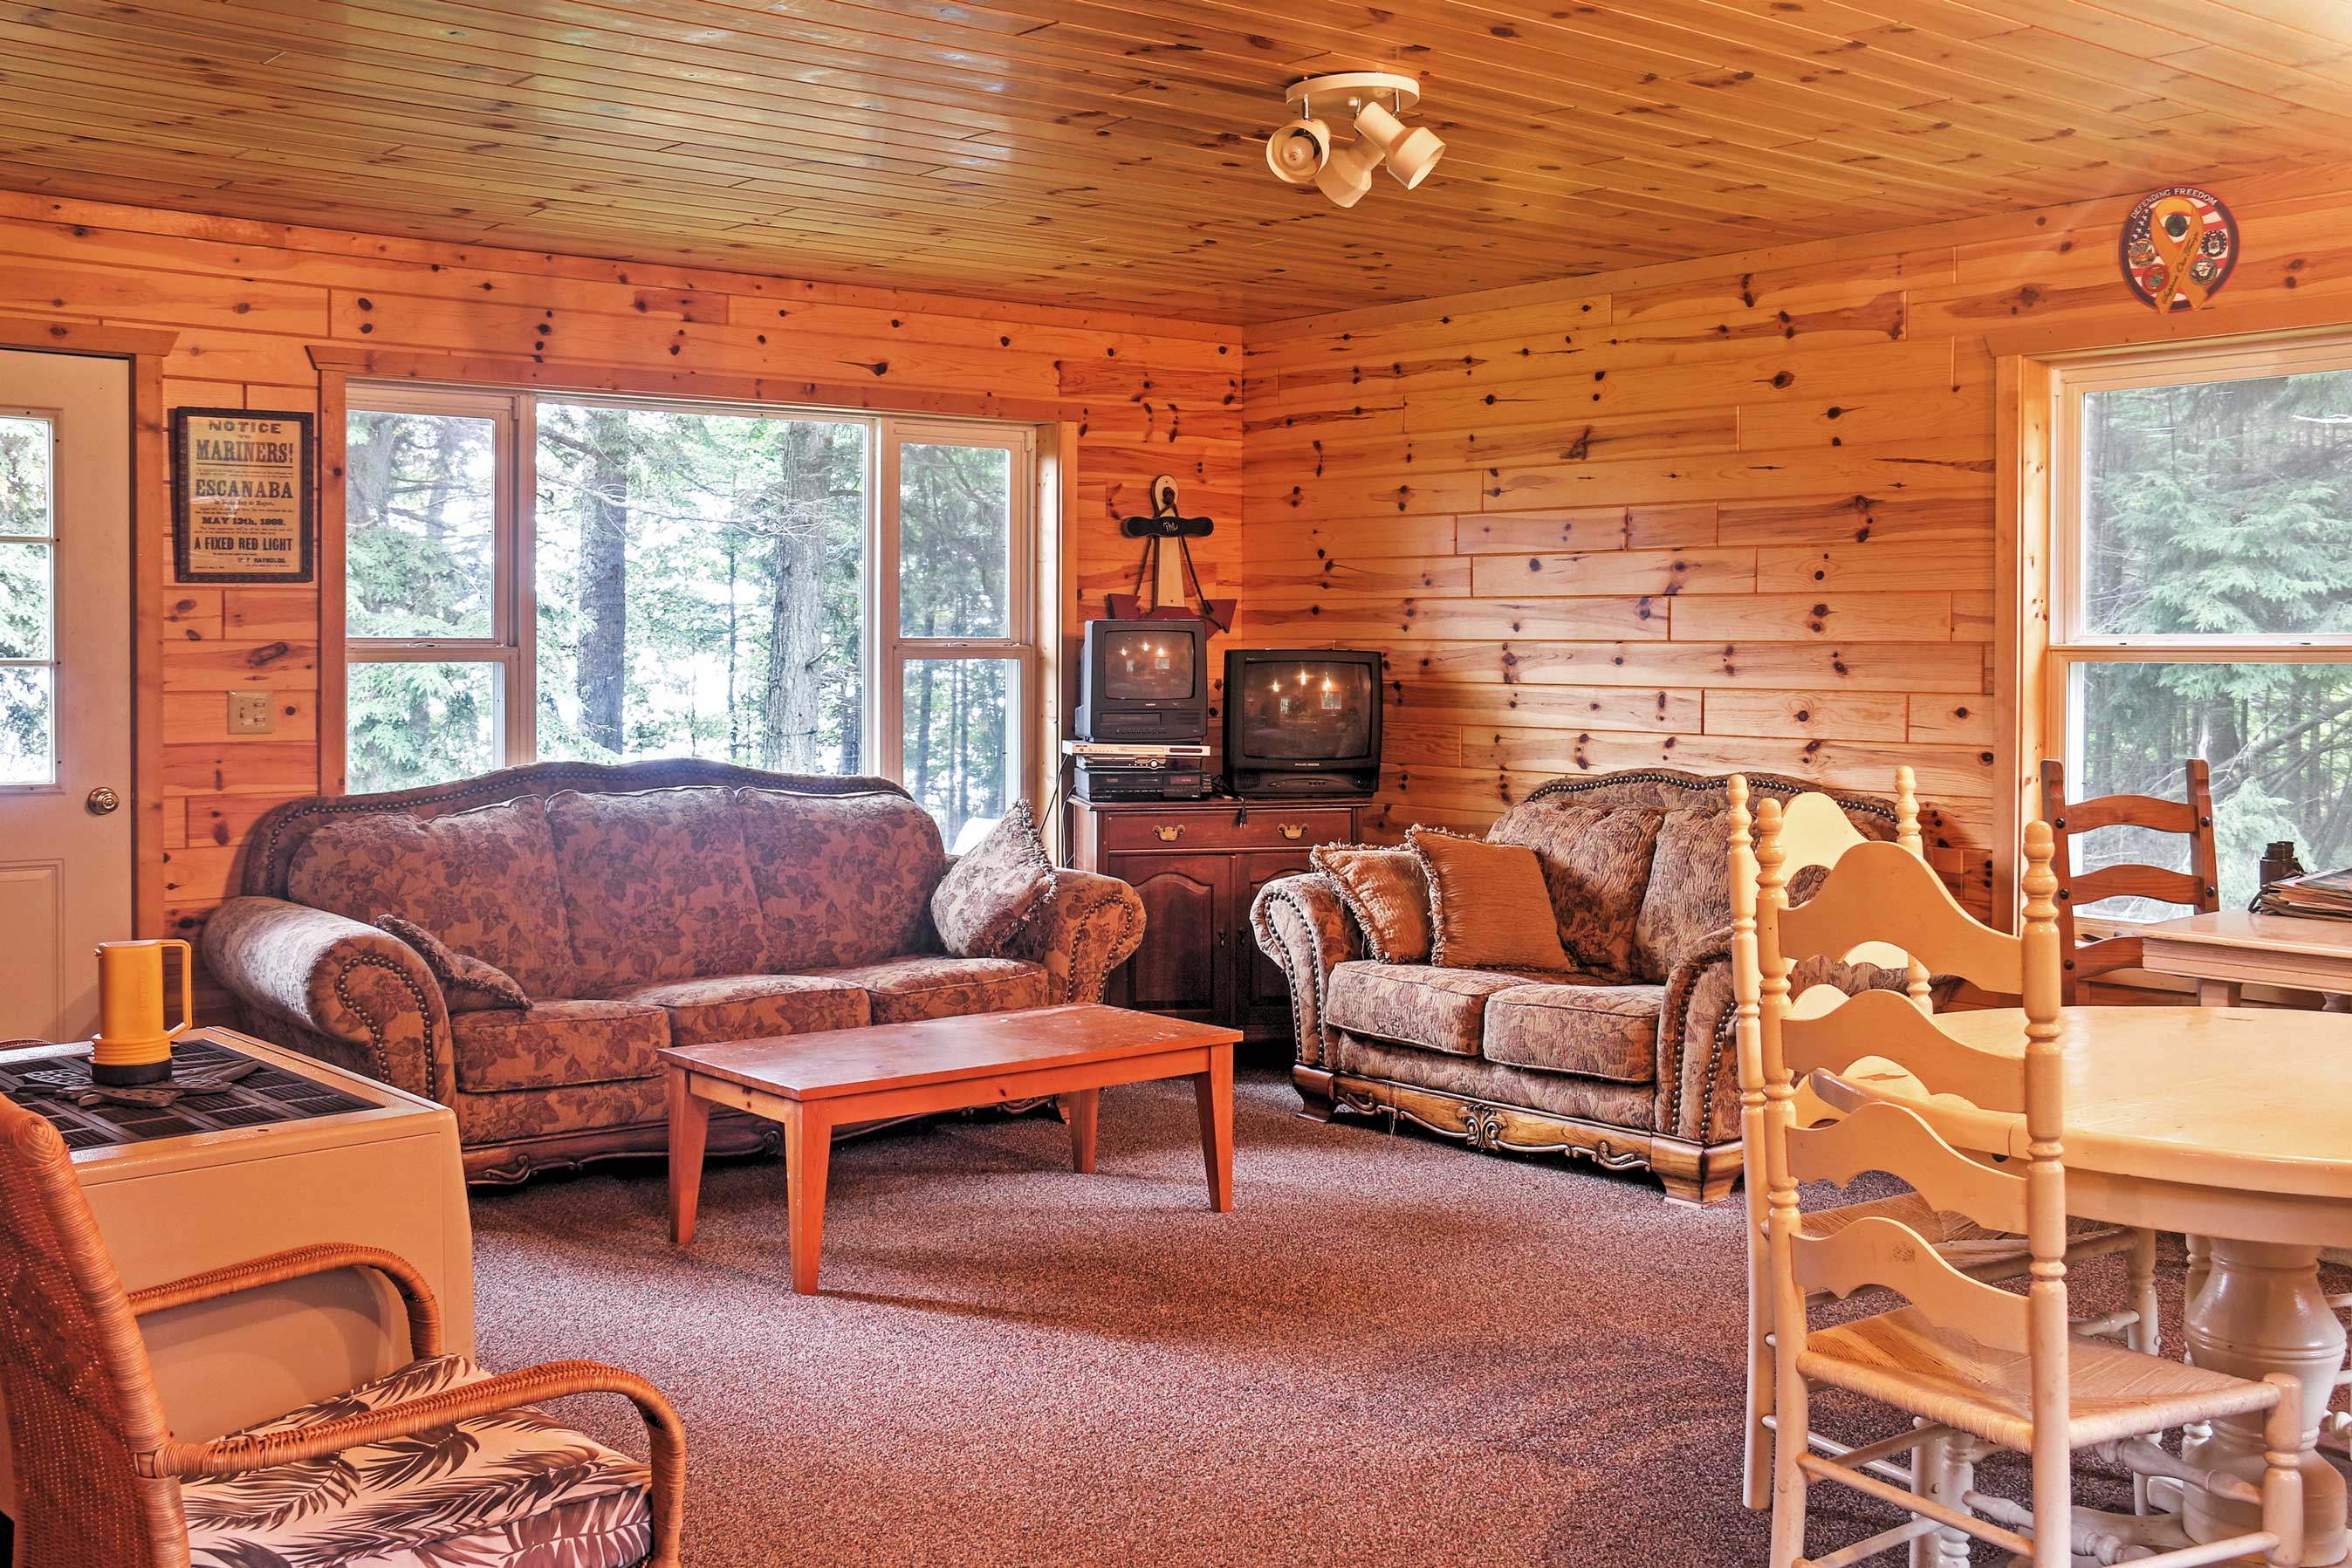 Sit back and relax on the cozy couches in the living area.